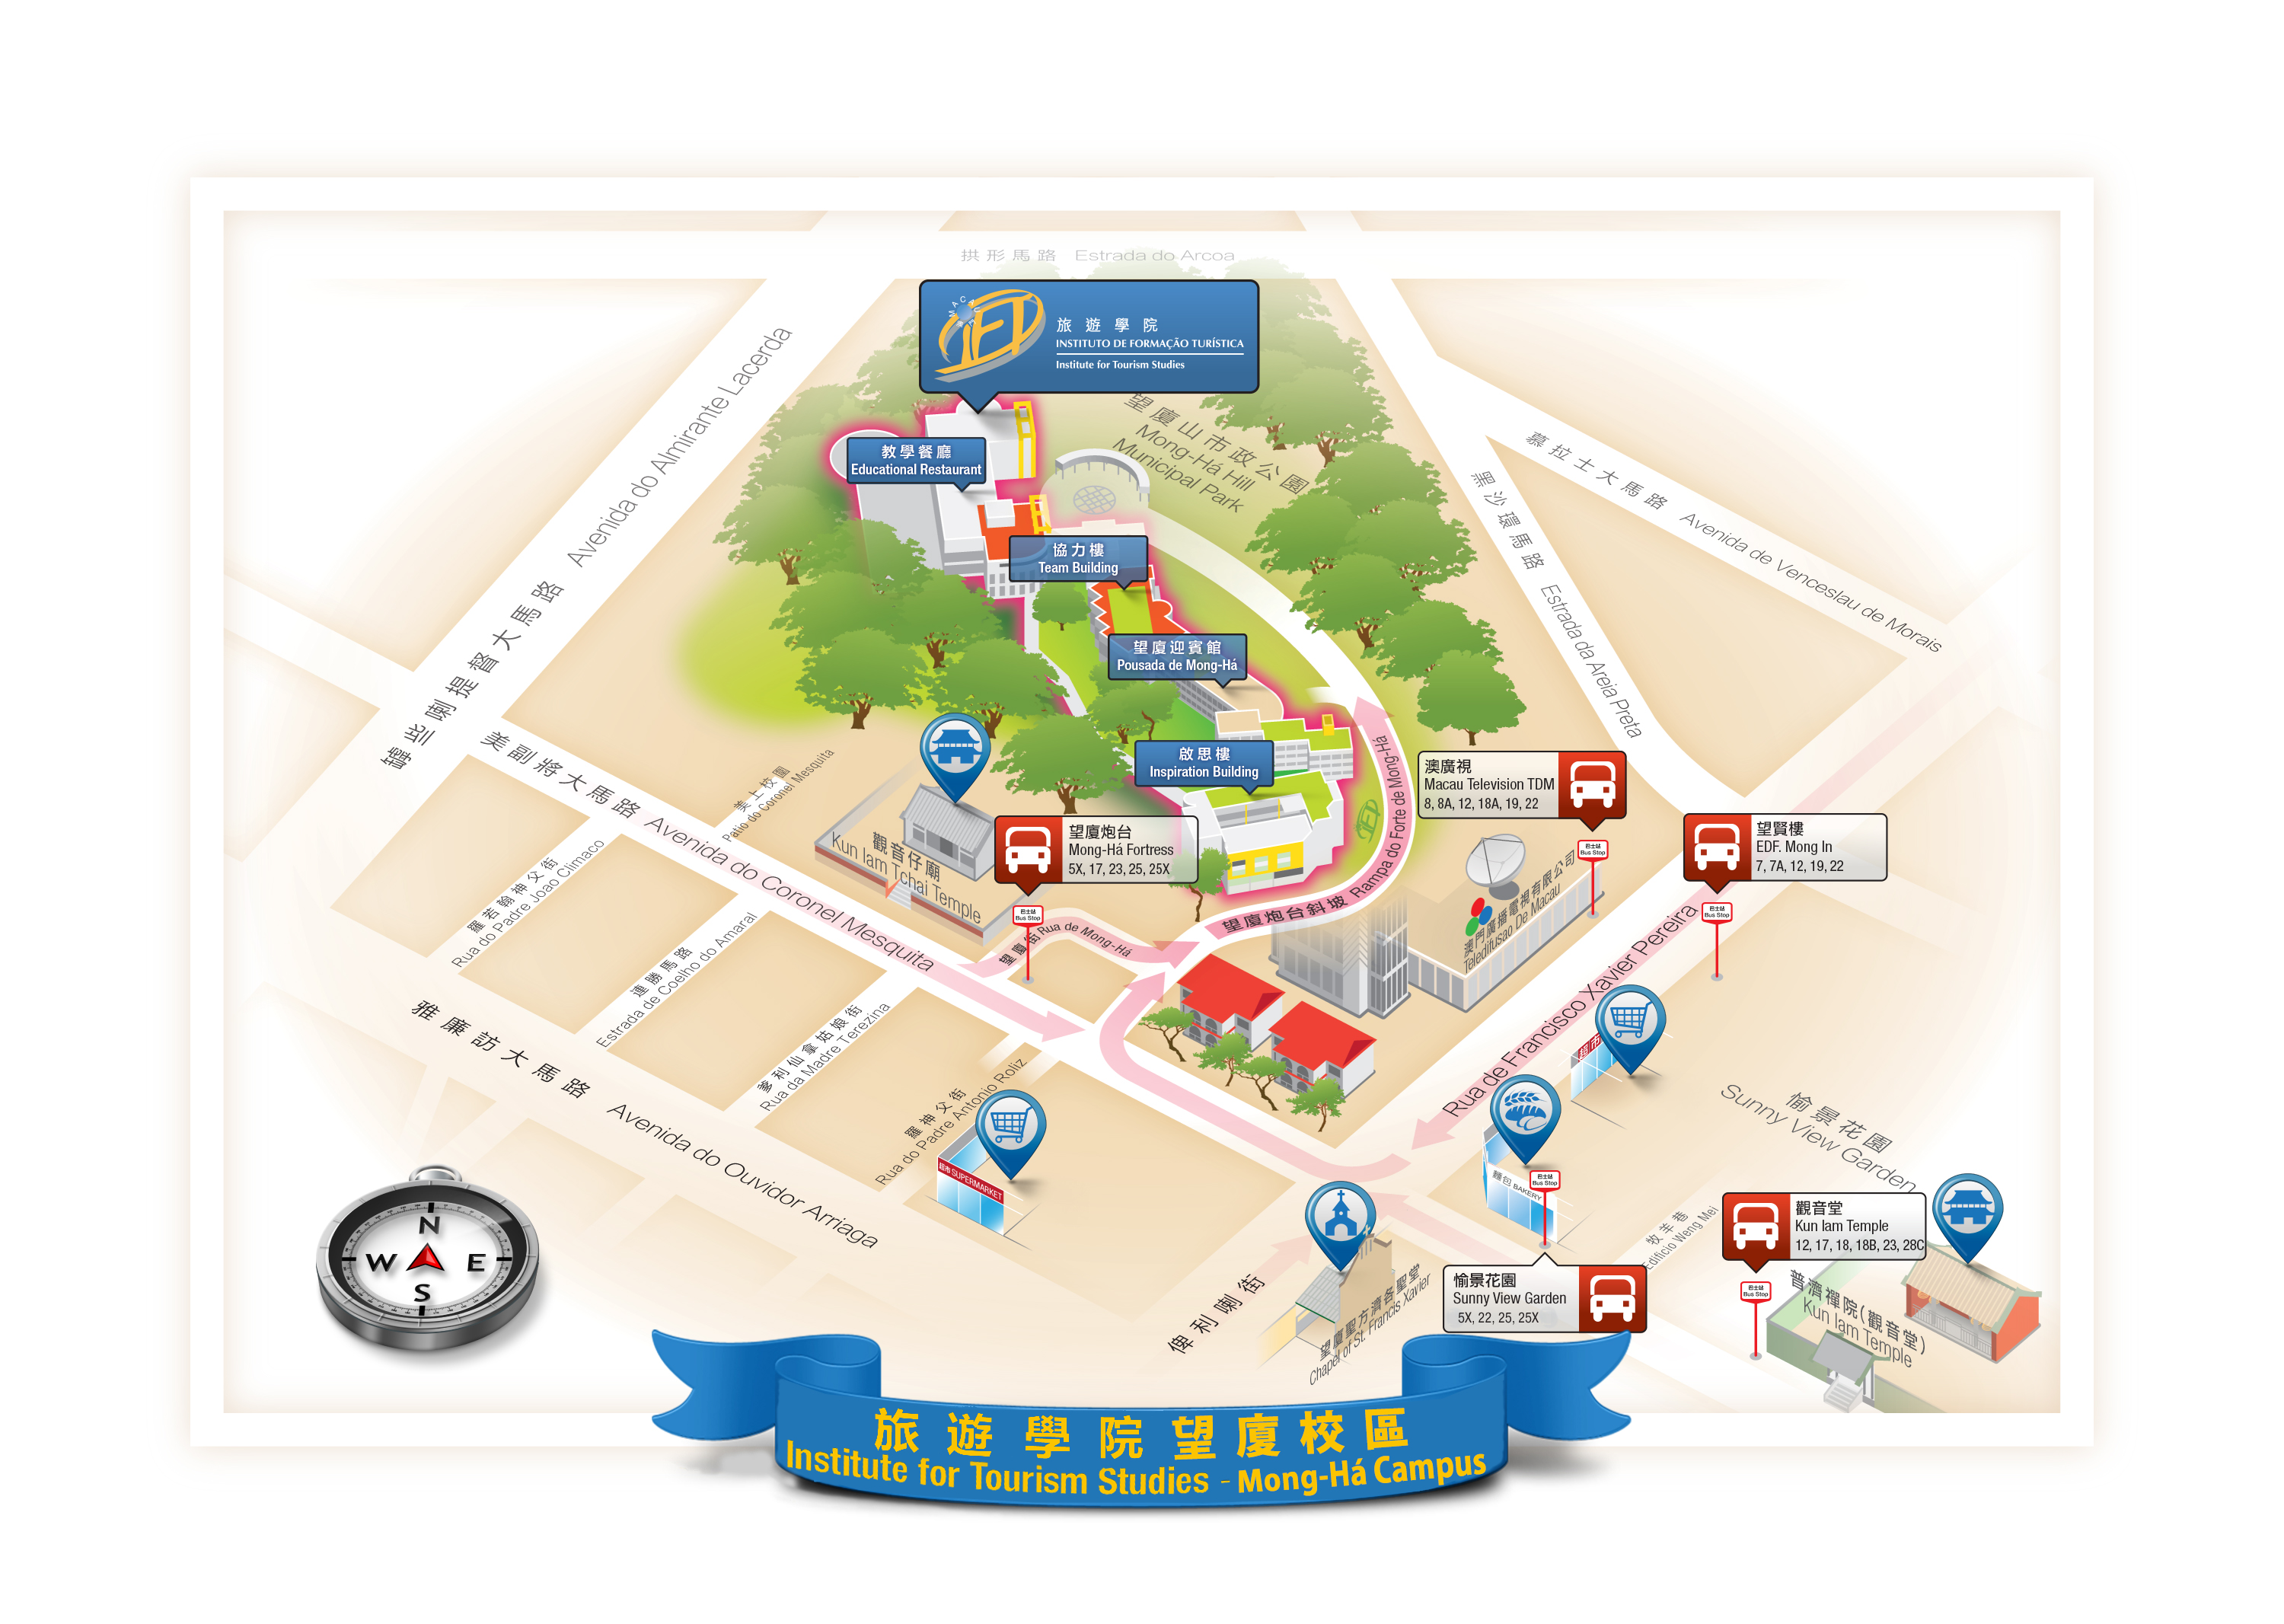 map to show how to reach mong ha campus